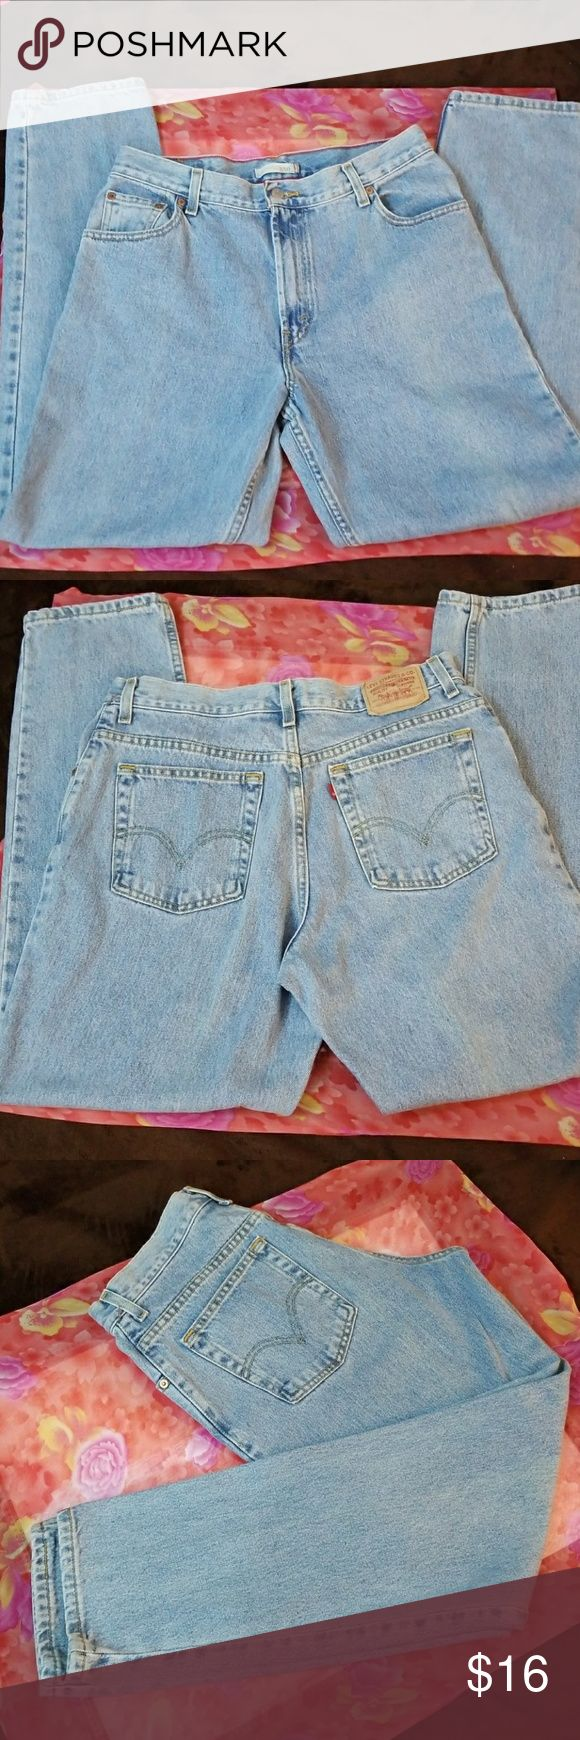 ♀️Levi's 550  Jeans♀️ Light Wash Blue Denim Relaxed Tapered Levi's 550 Jeans. Actual Measurements: Waist 32, Inseam 30, Hips 44, Knee 19, Leg Opening 14, Outseam 41, Front Rise 12, Back Rise 15.5. Levi's Jeans